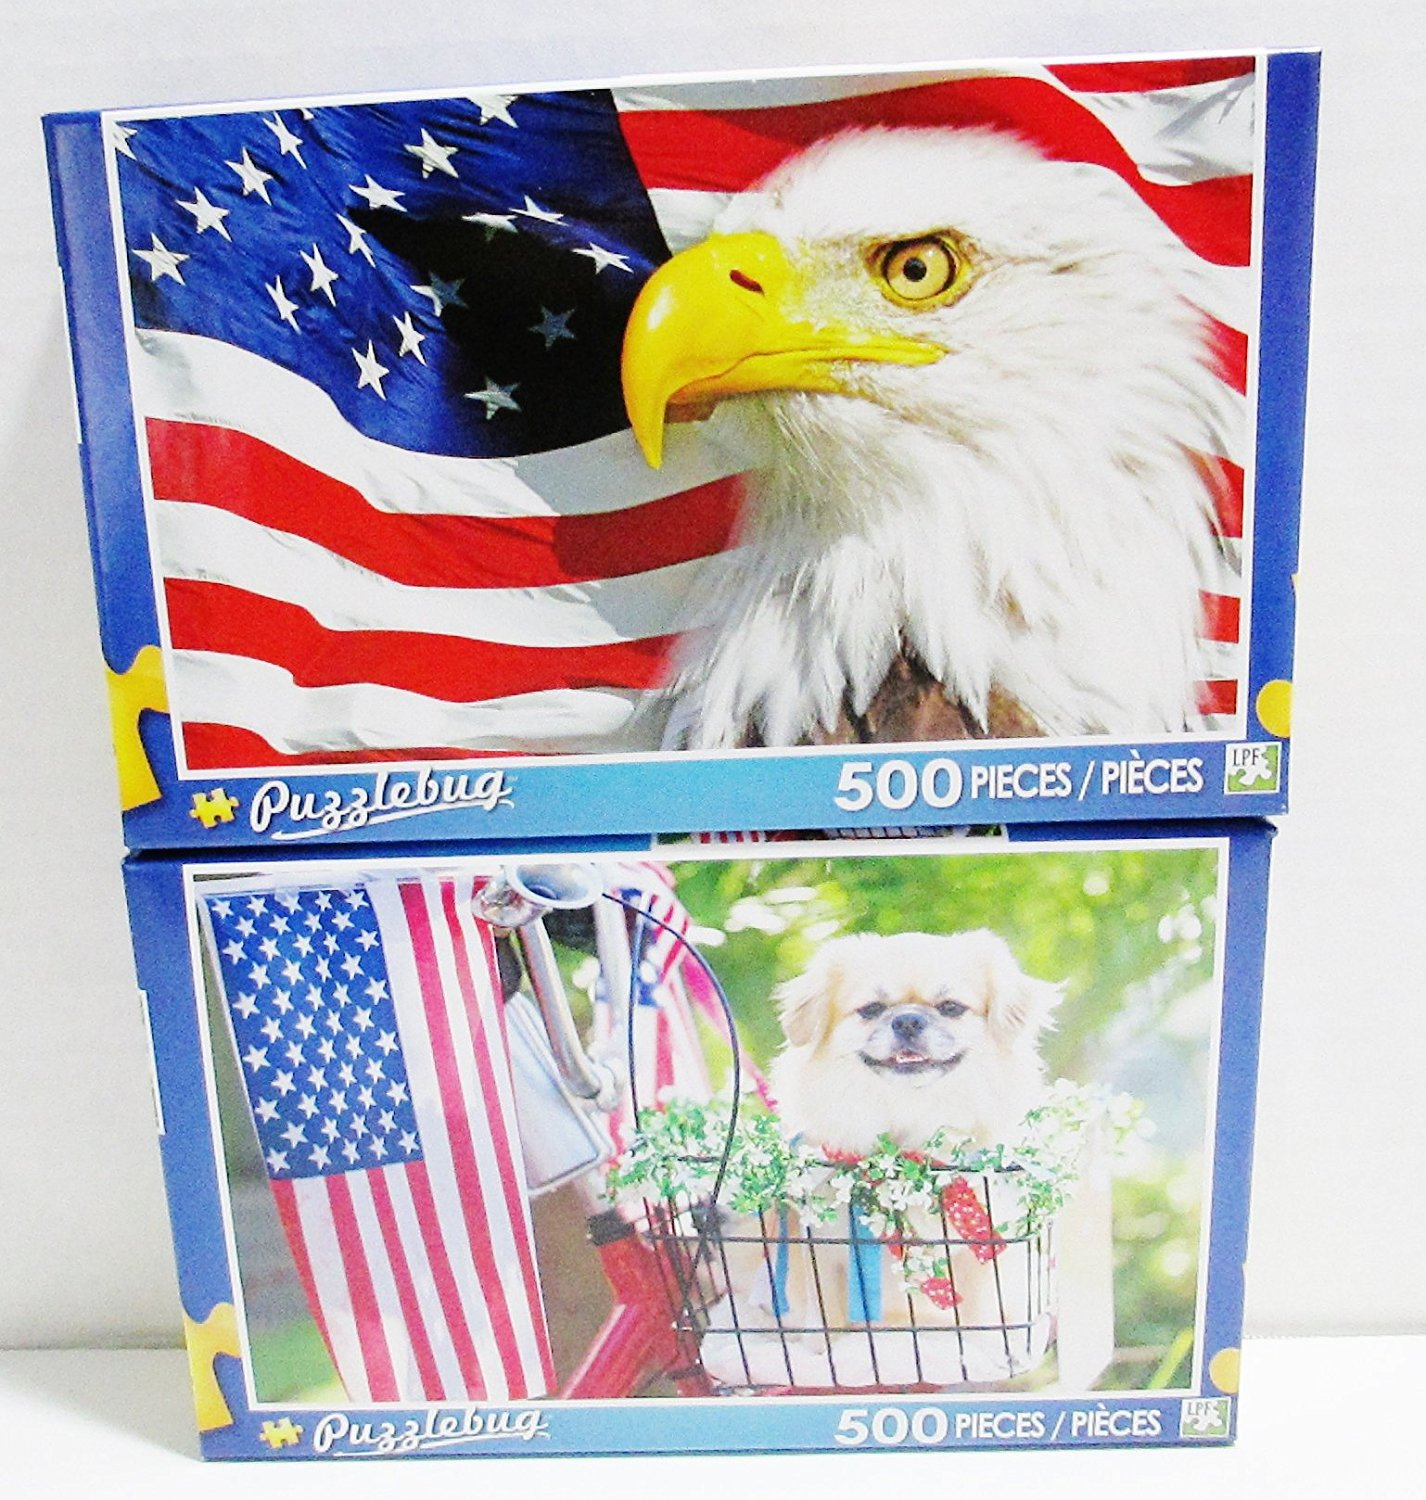 2 Puzzlebug Jigsaw Puzzles - 500 Pieces Each - American Eagle & All American Pup